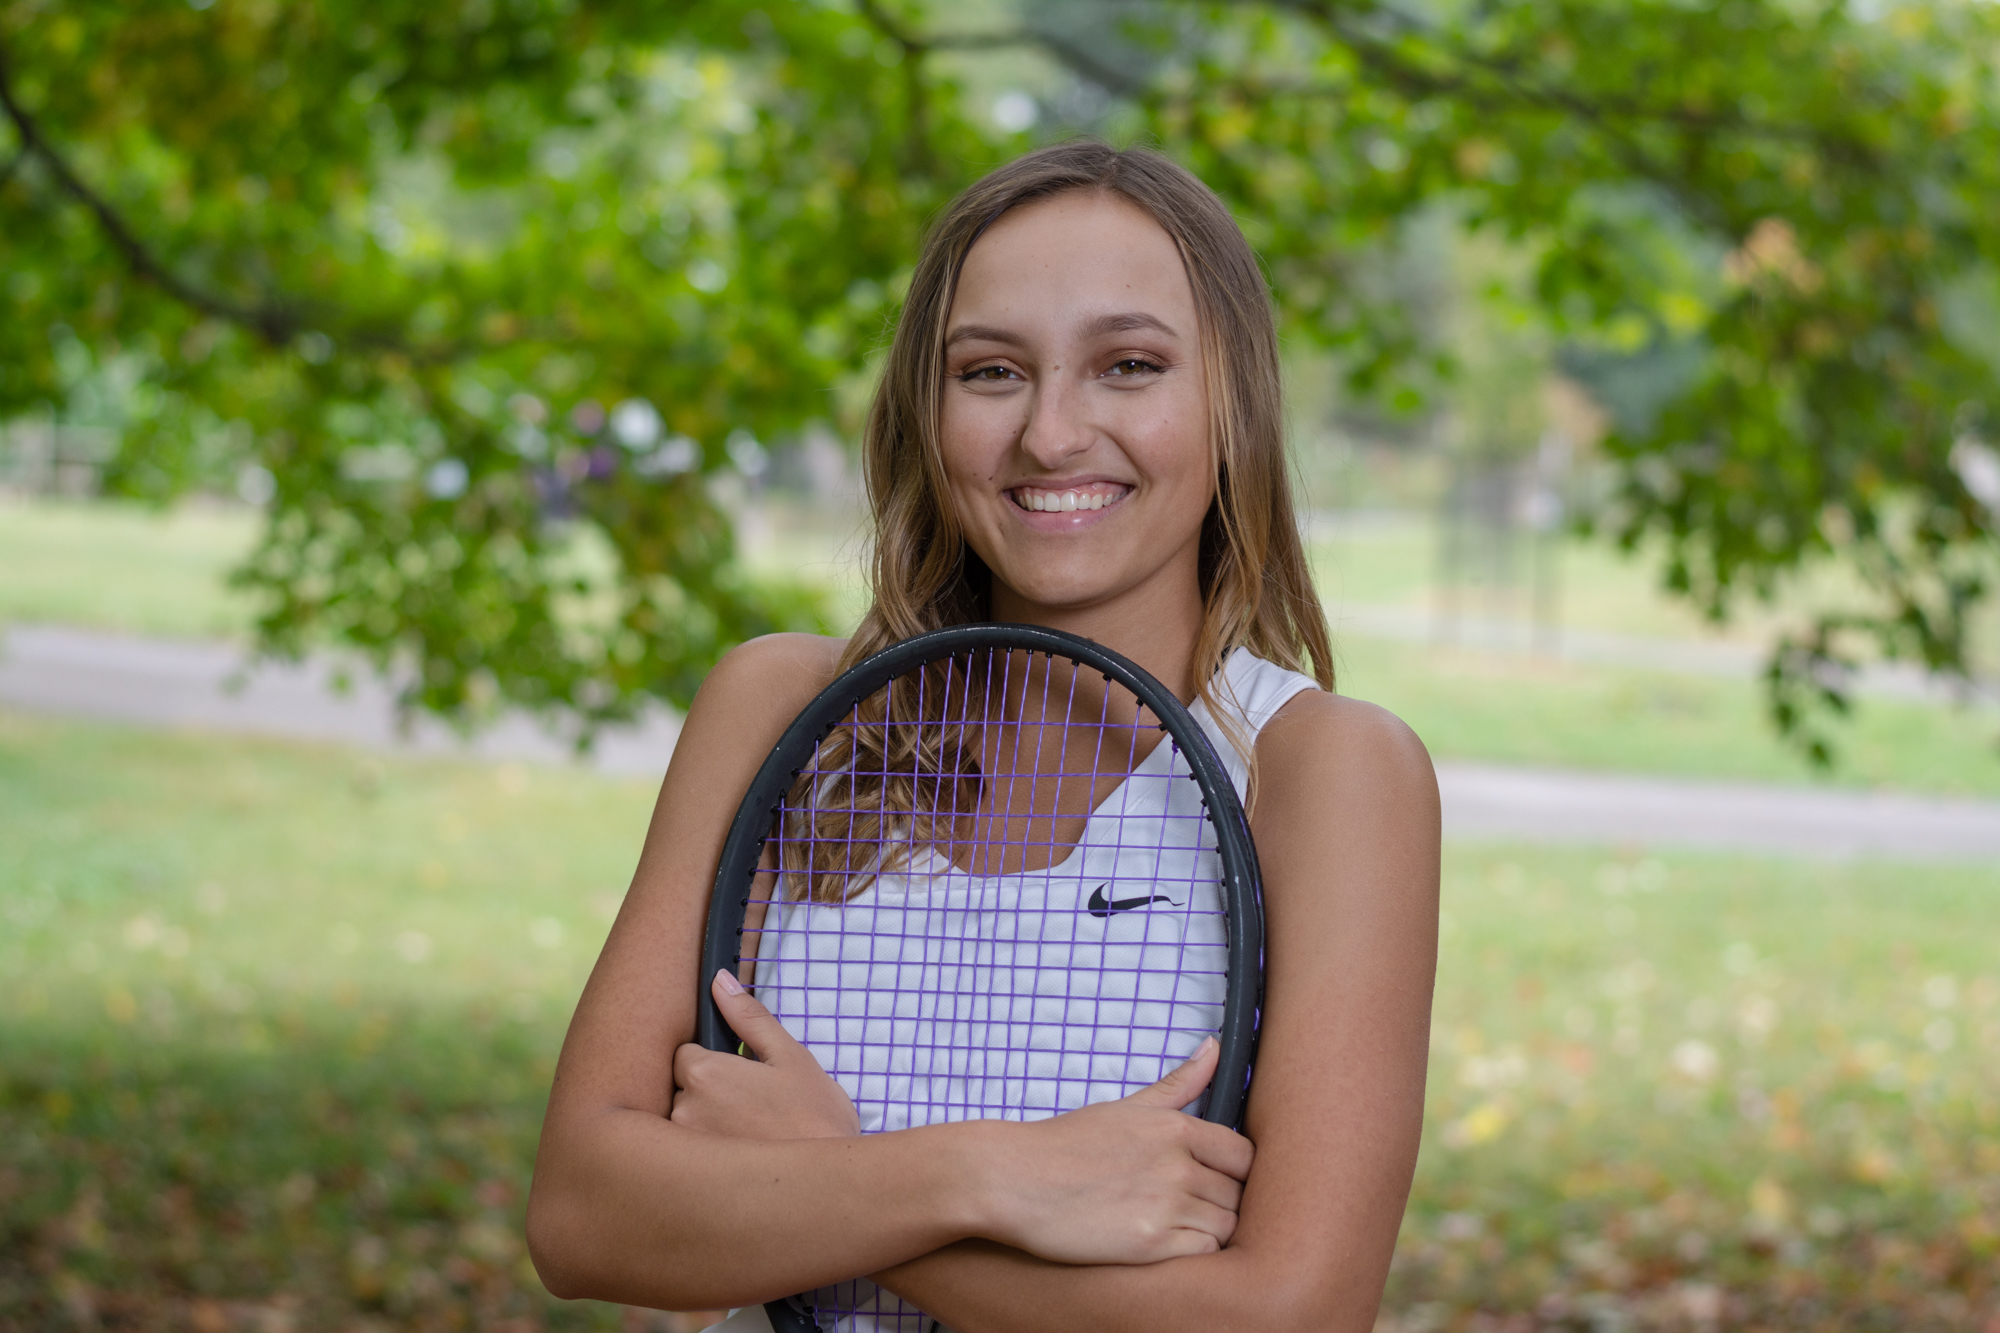 life by pictures photography_senior portraits_Olivia_columbus_20171008_13.jpg